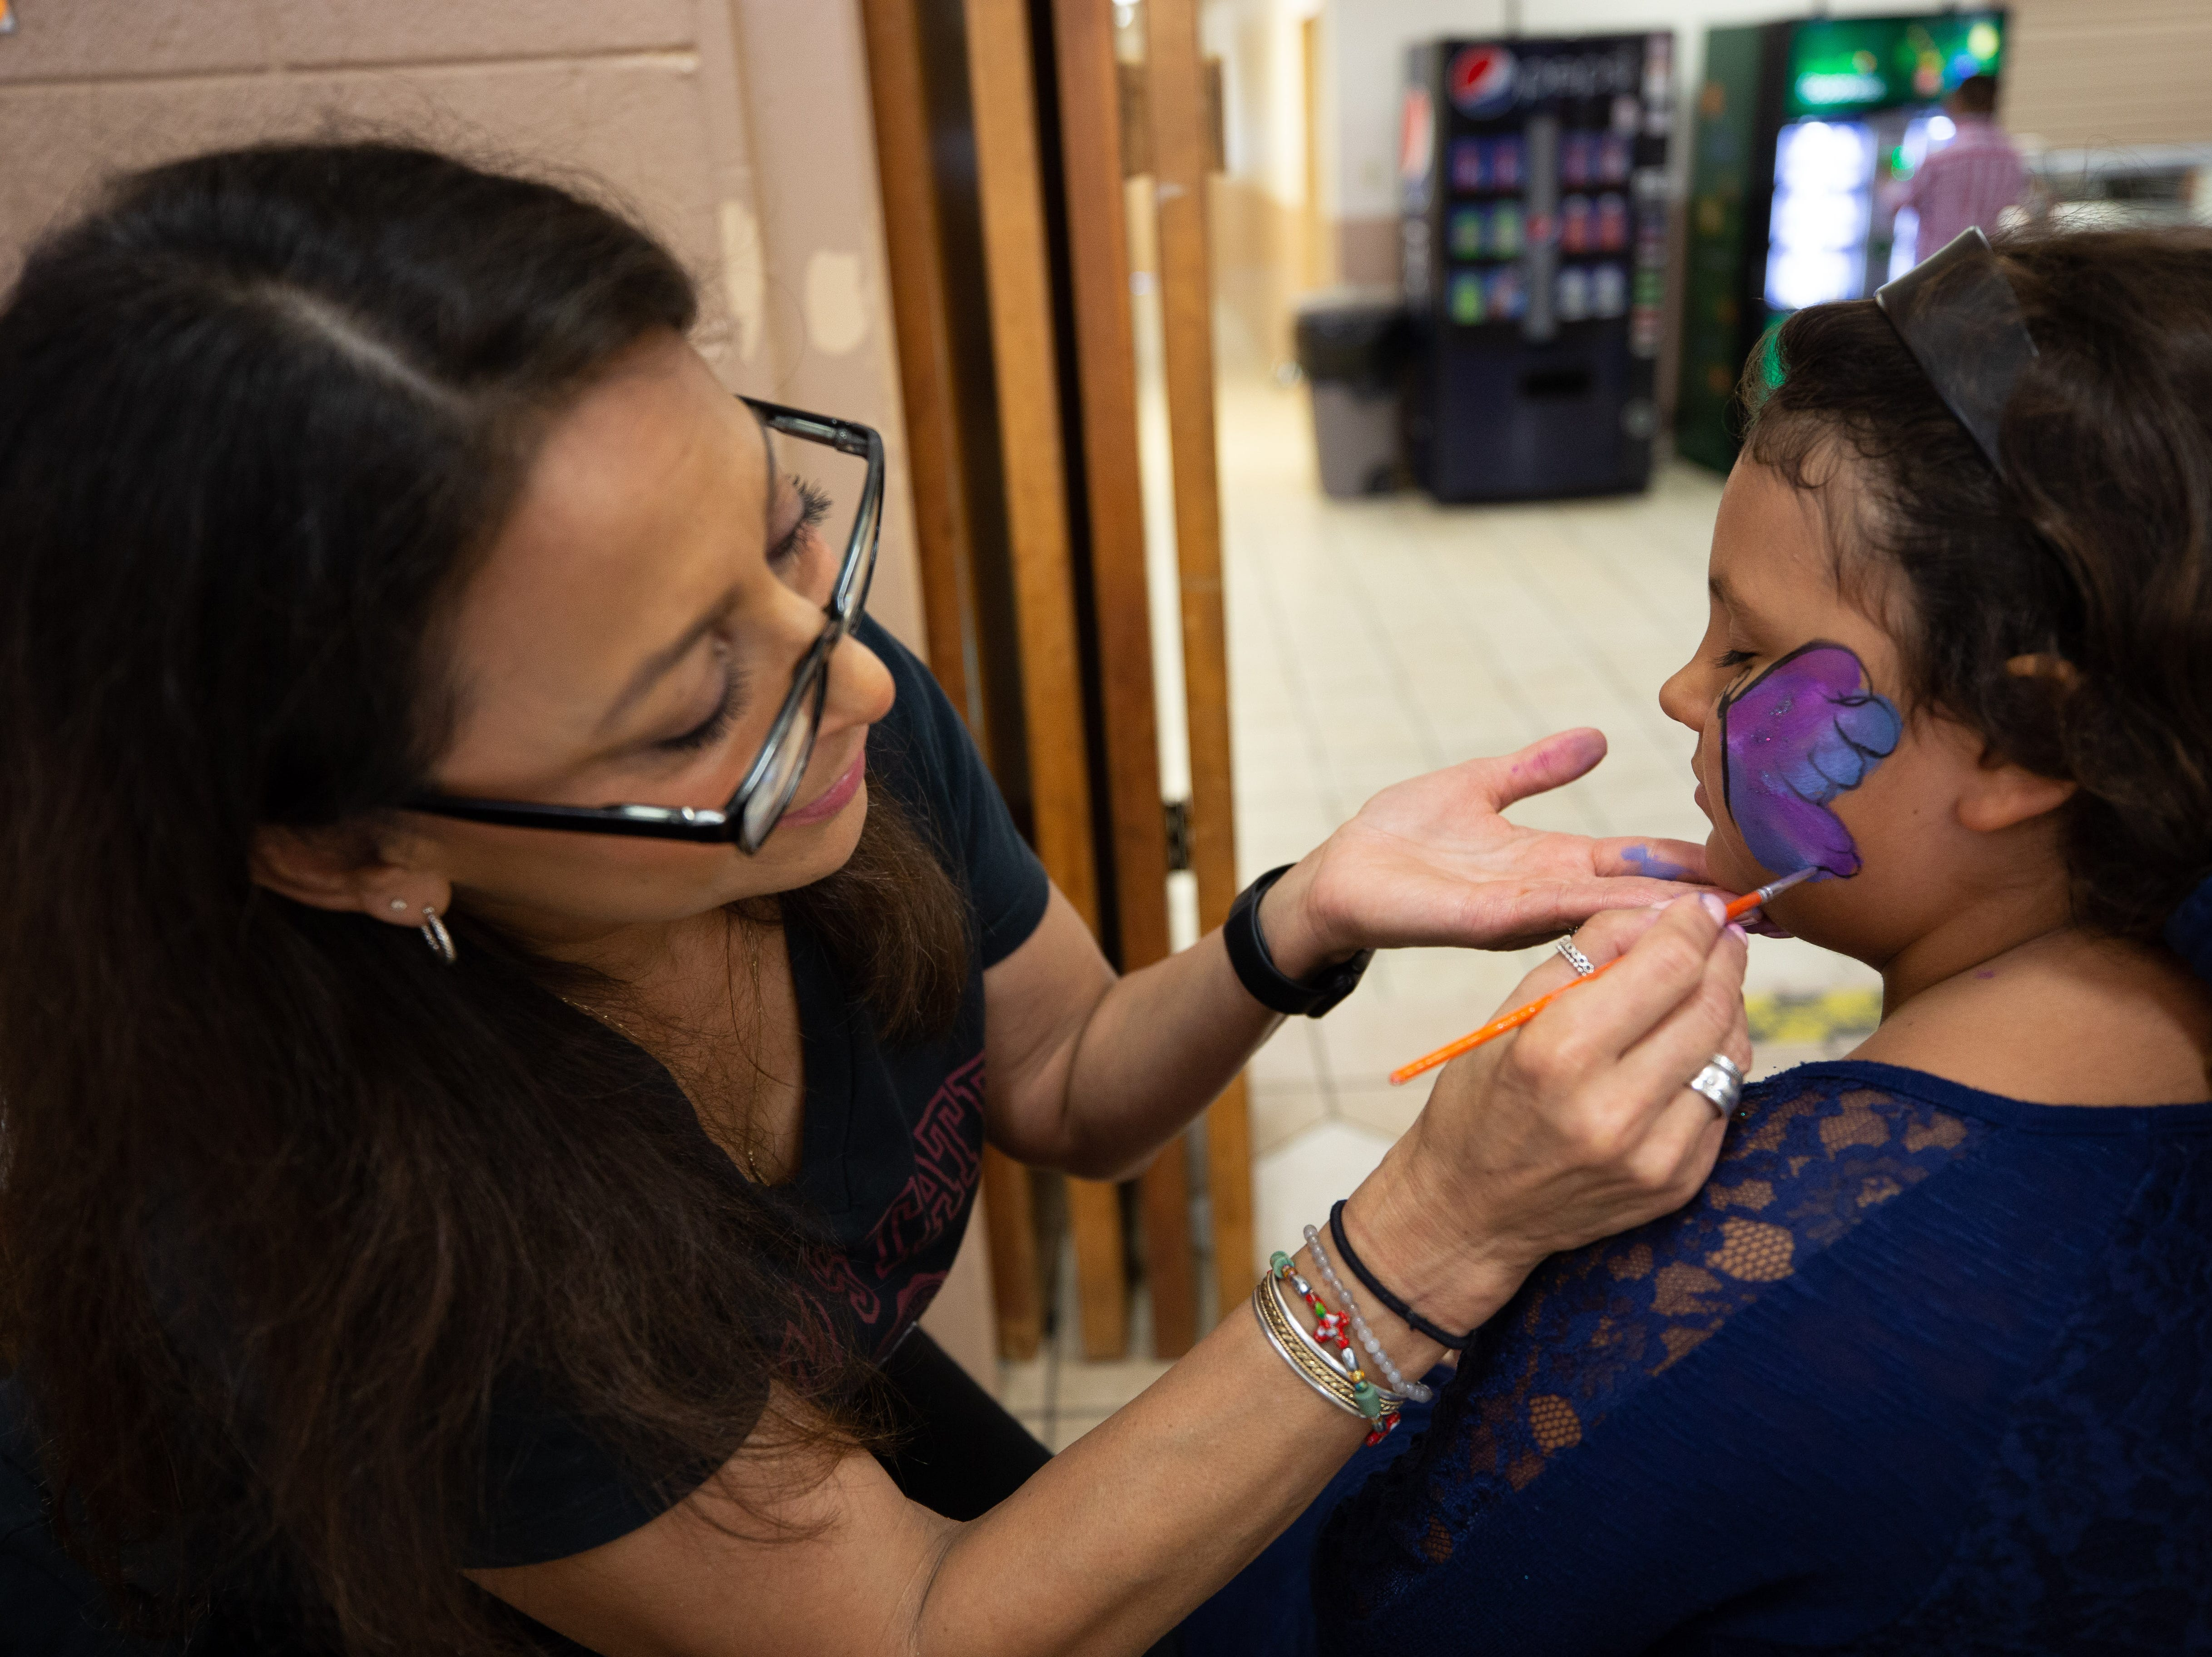 Bendi Saucedo, 7, sits still as Cindy Salas paints a colorful design on her cheek at the St. Genevieve Fiesta on Saturday, Sept. 8, 2018.